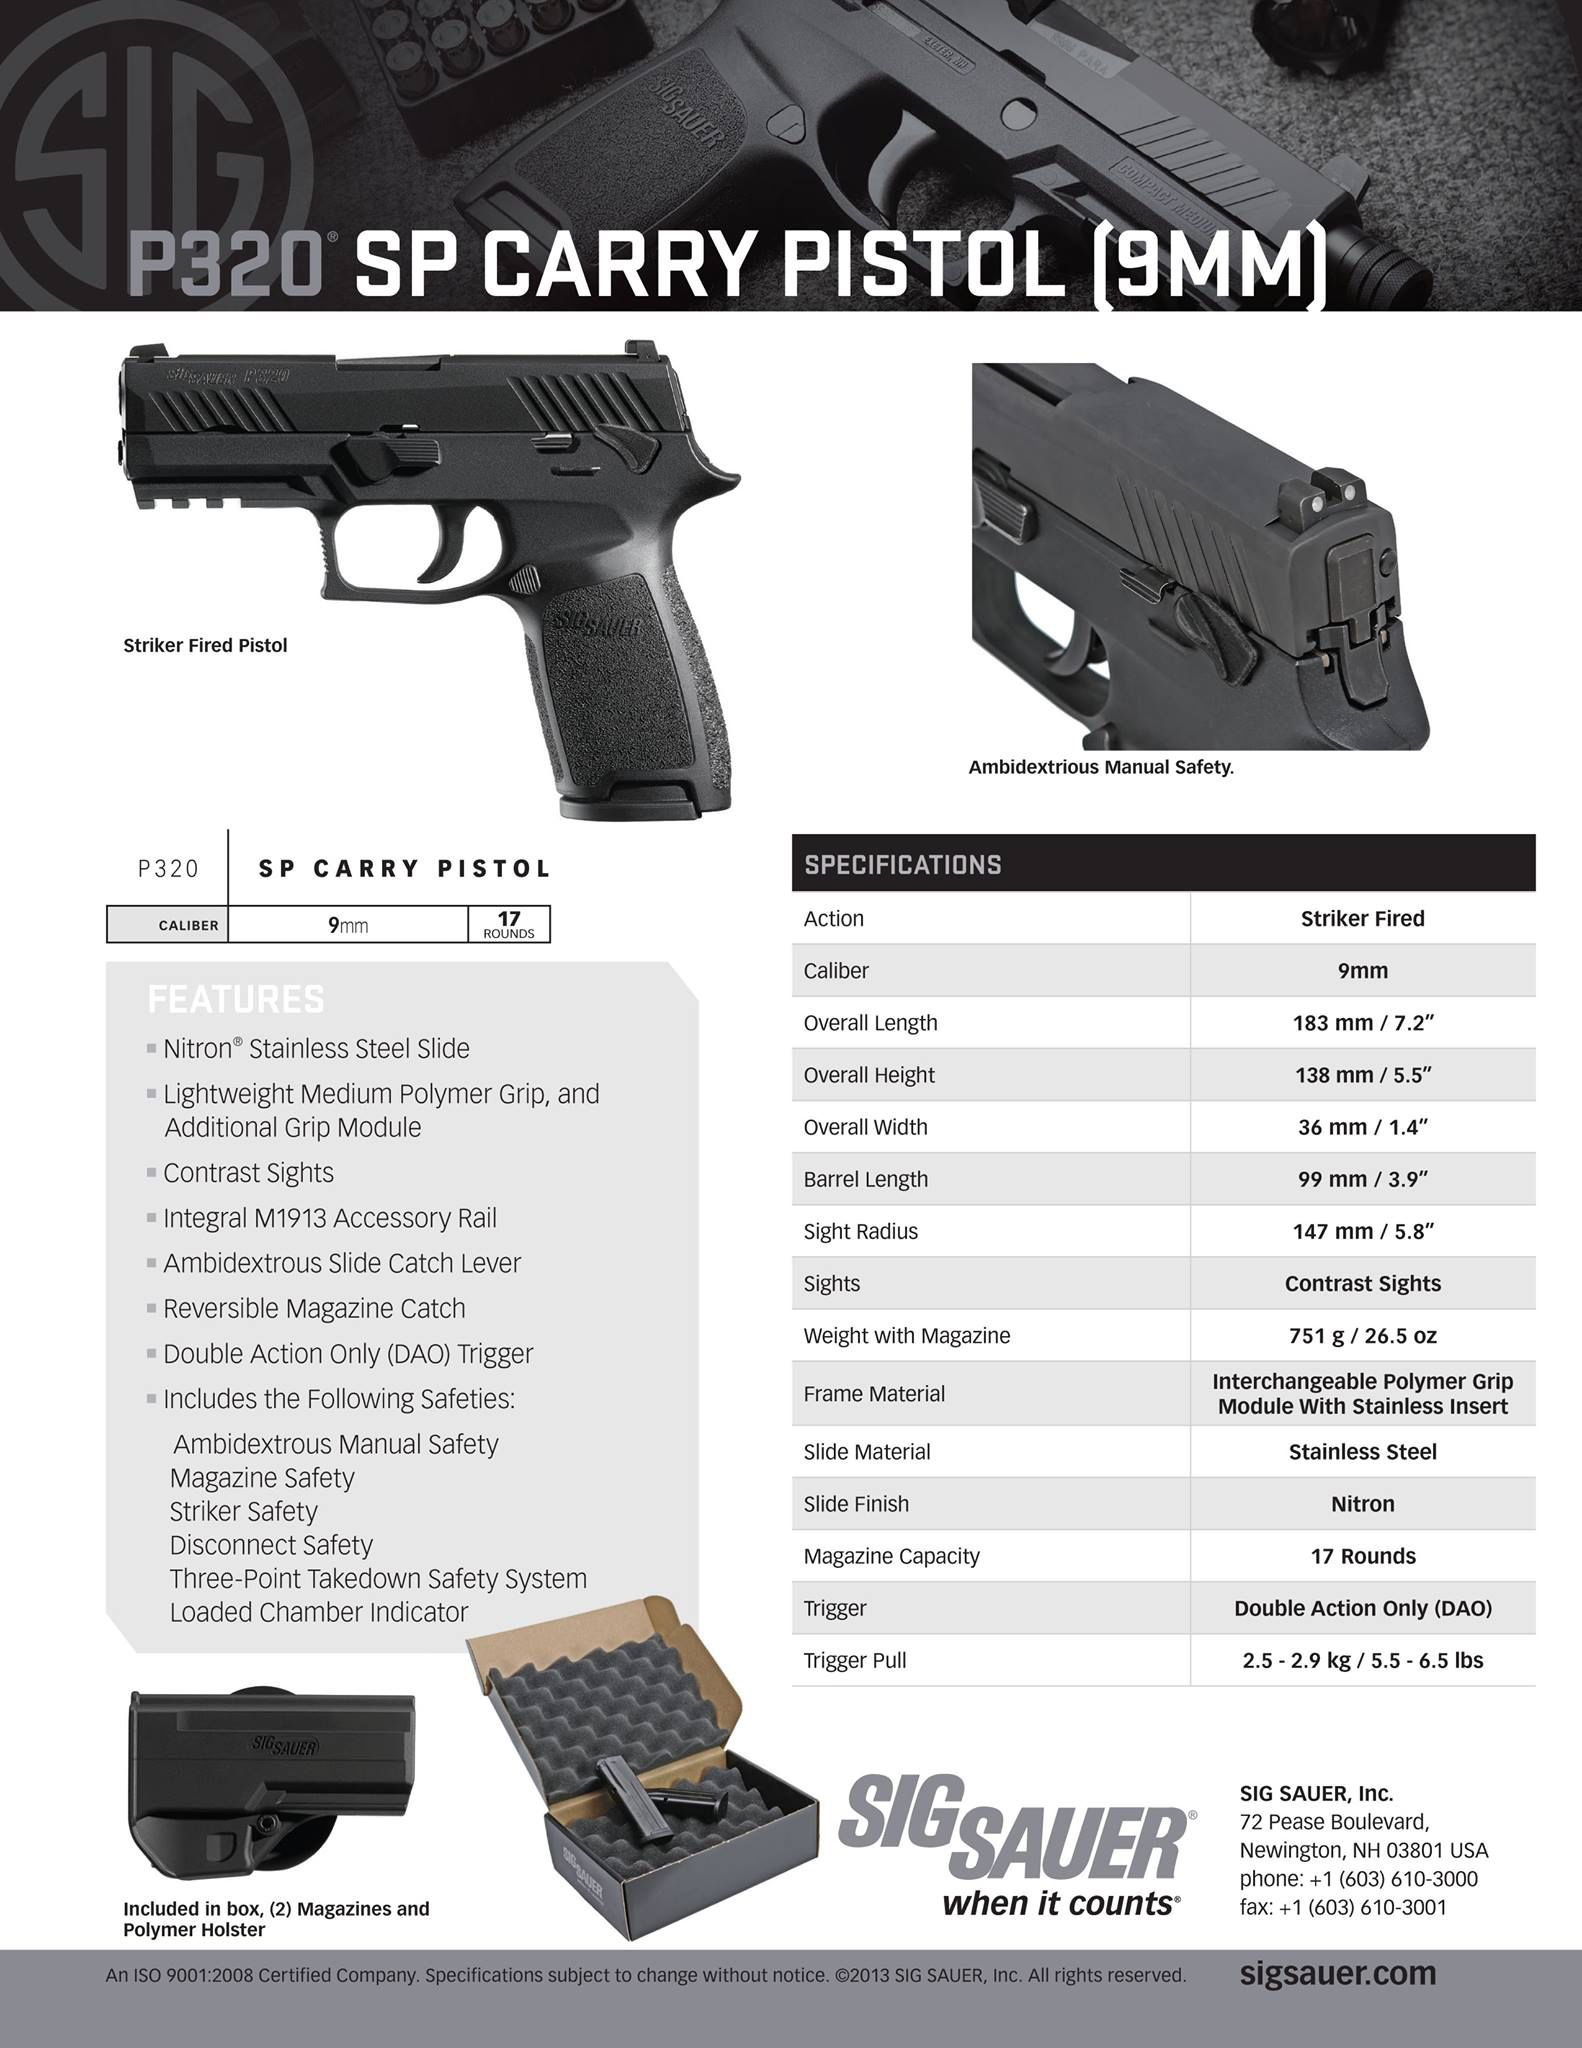 sig sauer p320 sp fcu with manual safety loading that magazine is a pain [ 1582 x 2048 Pixel ]